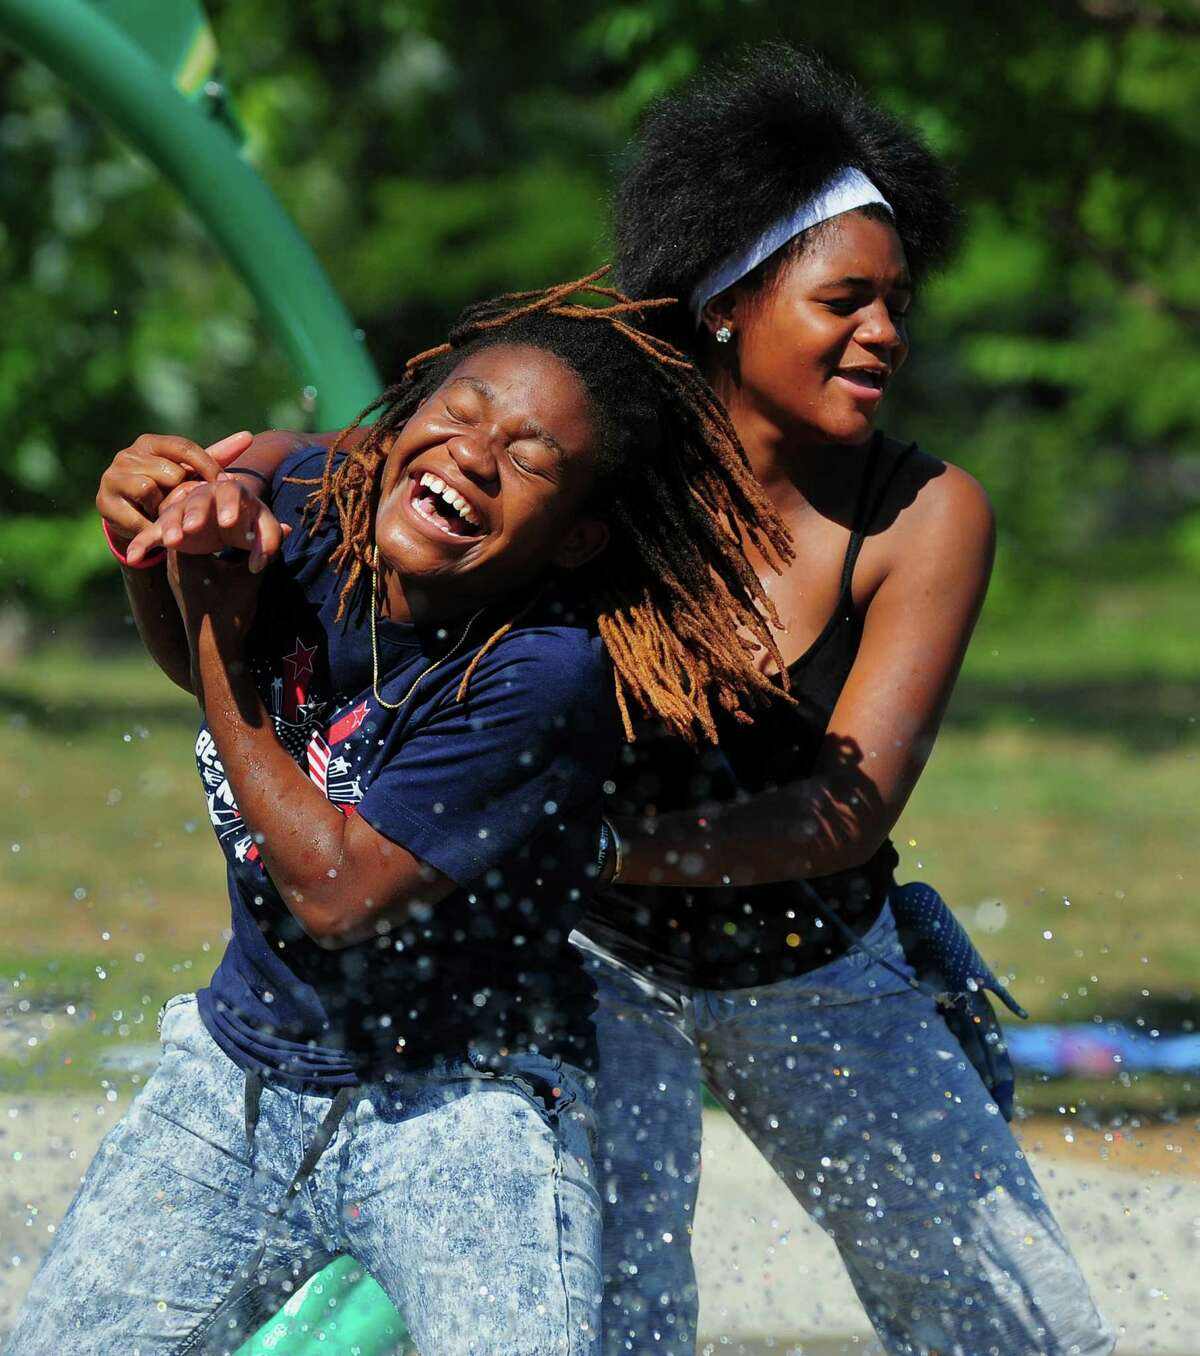 Mikea Curry, 15, gets pushed into a stream of water by her friend Destinee Williams, 14, as they play at the splash pad at the Luis Munoz Marin Park on Helen Street in Bridgeport, Conn., on Tuesday Aug. 4, 2015.